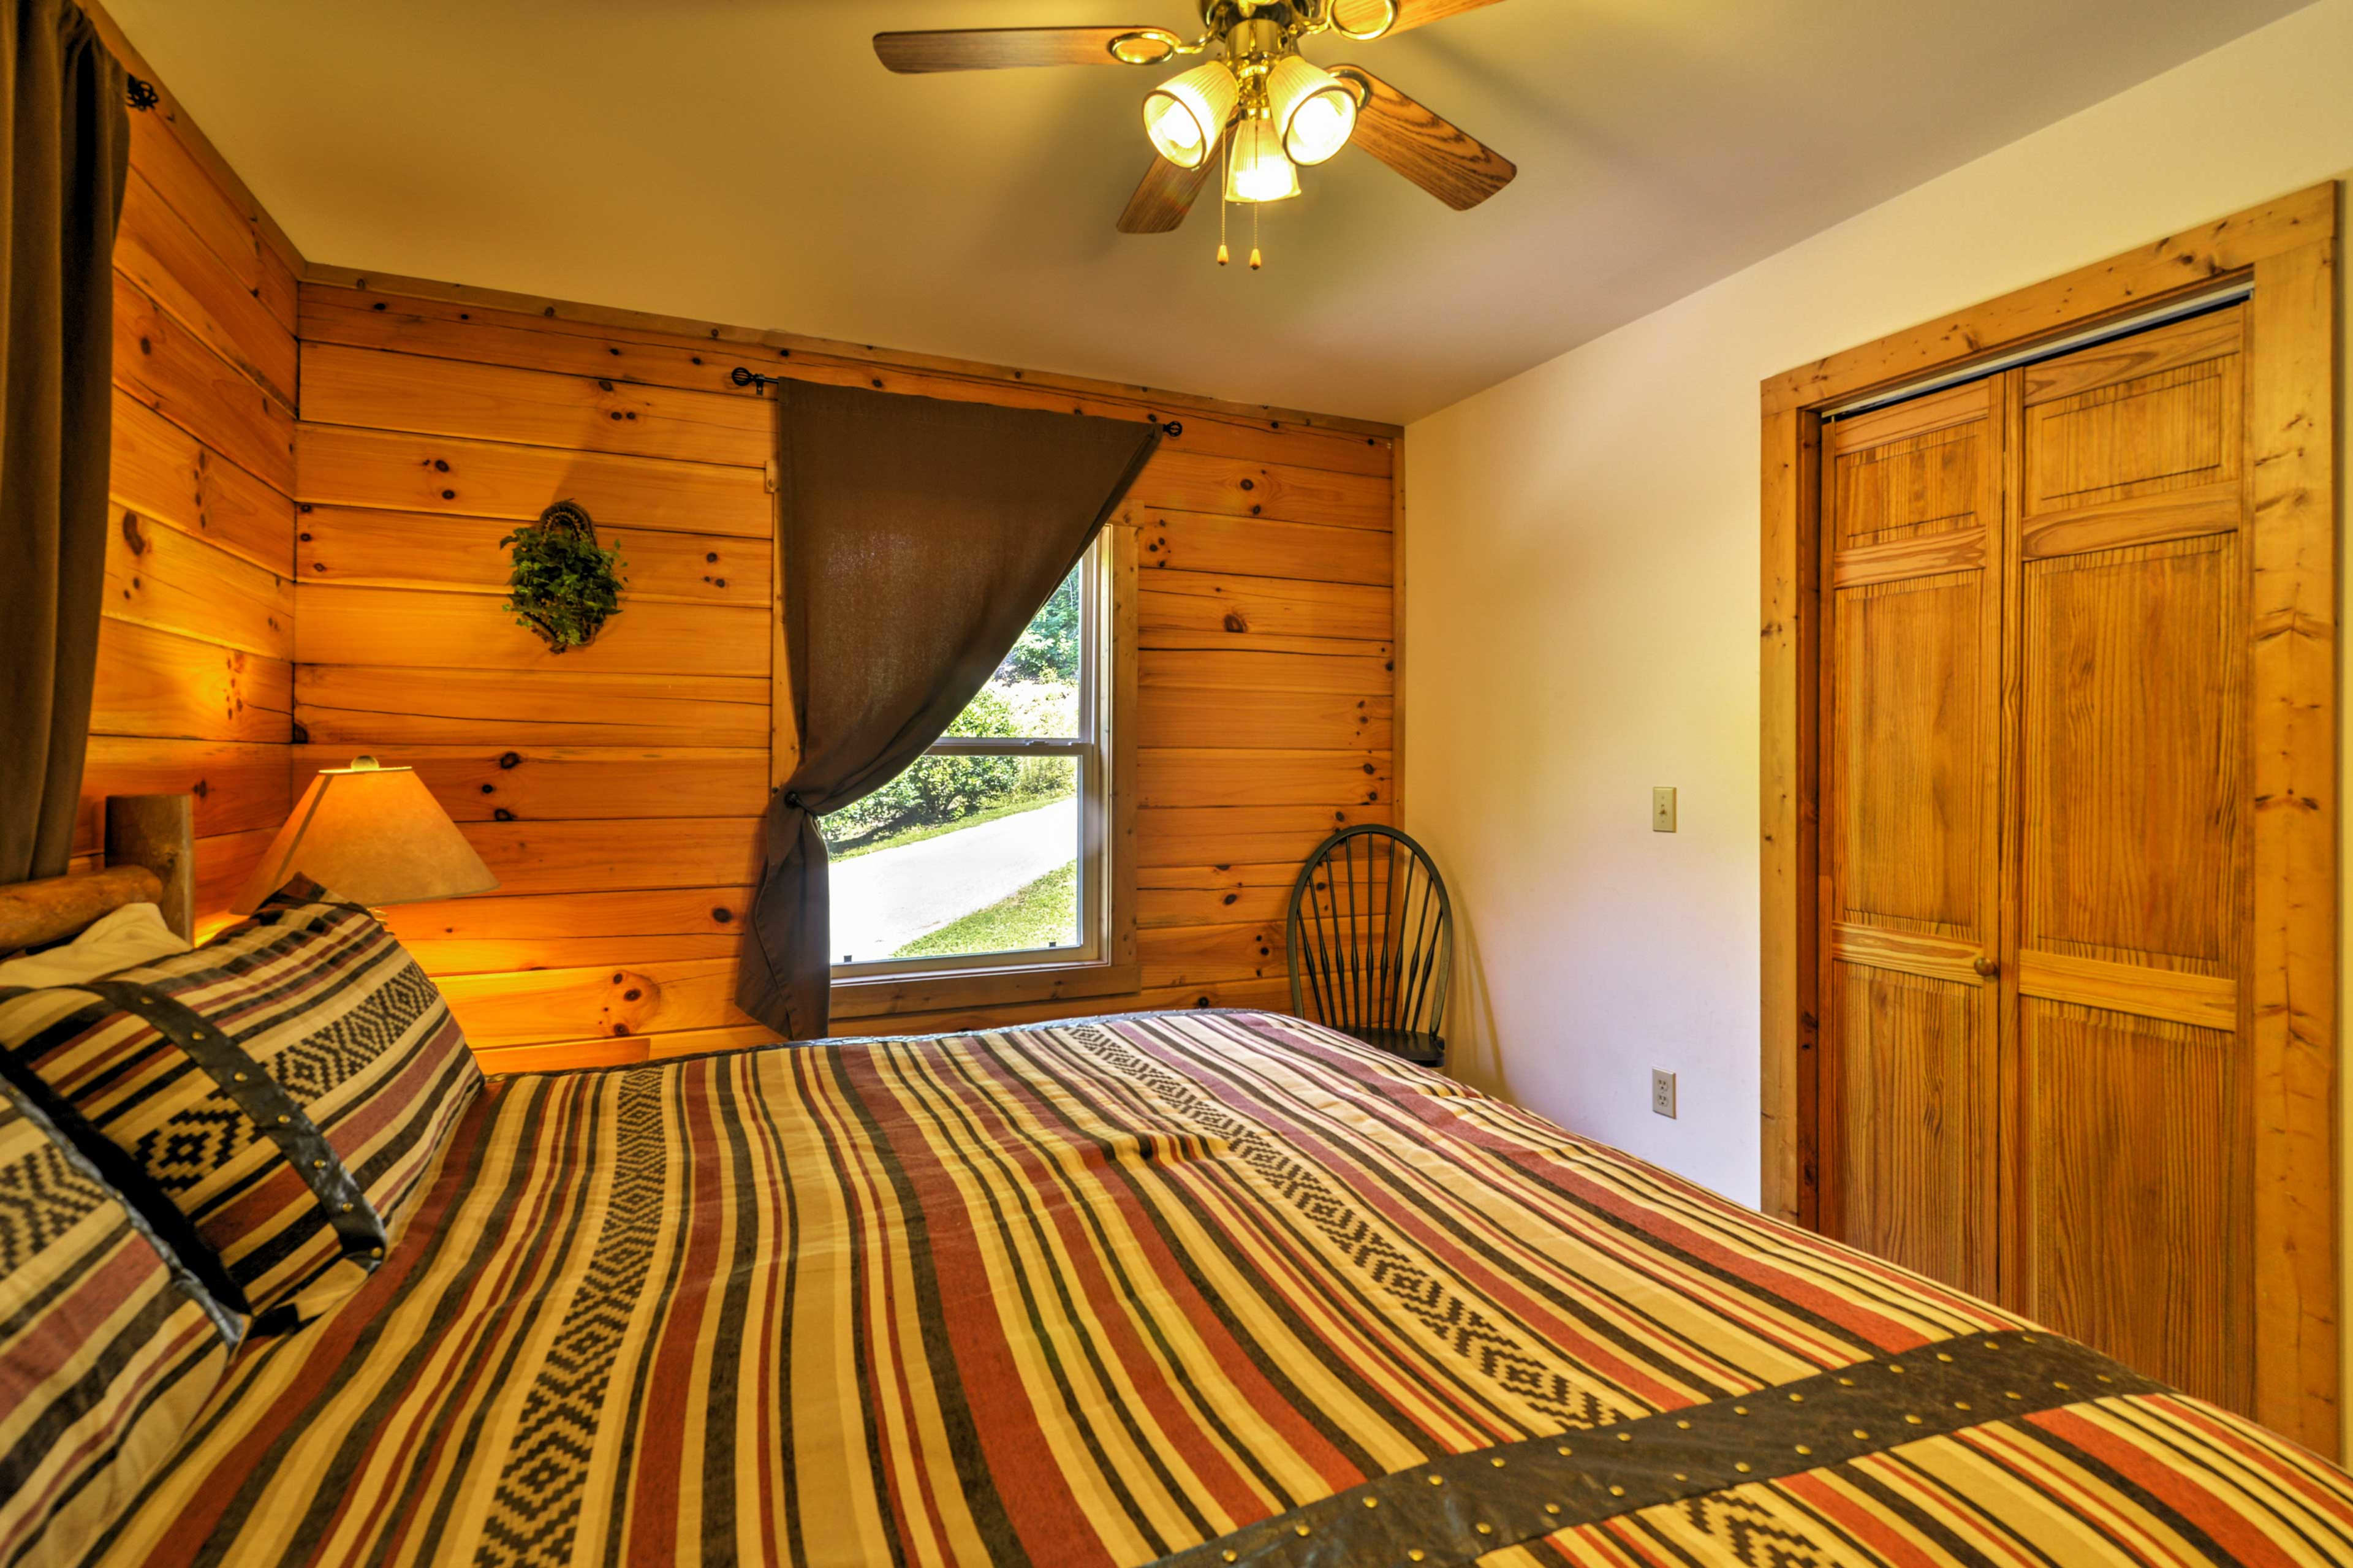 The cabin offers 2 bedrooms, 1 bathroom and accommodations for 4.